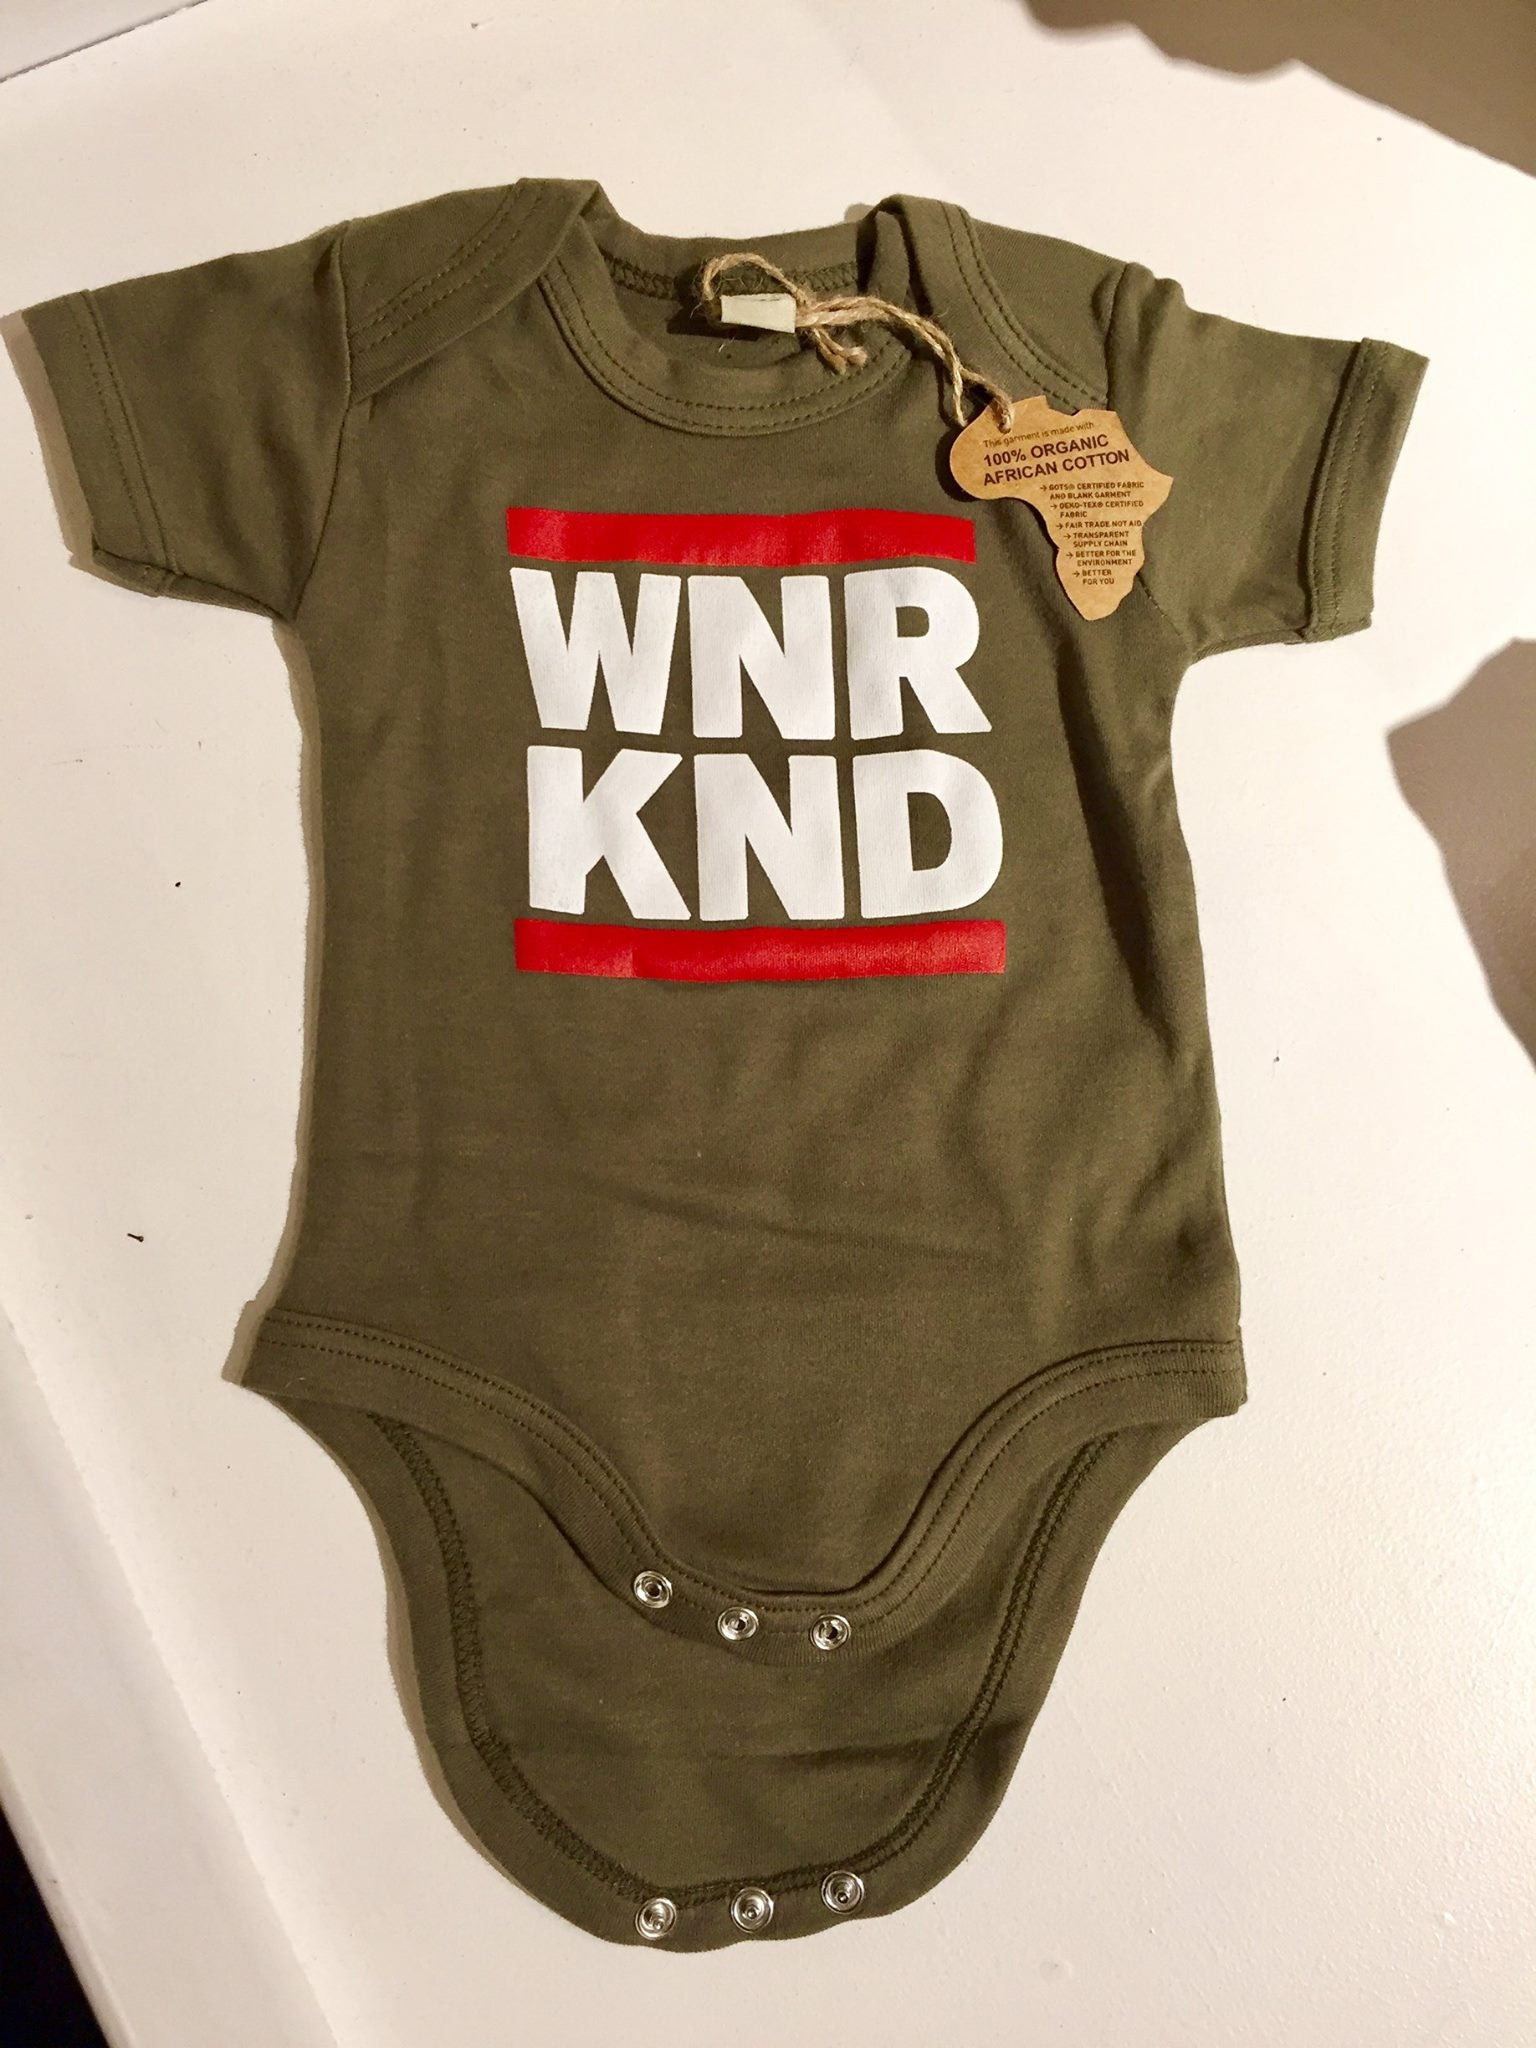 WNRKND Body red/white on olive